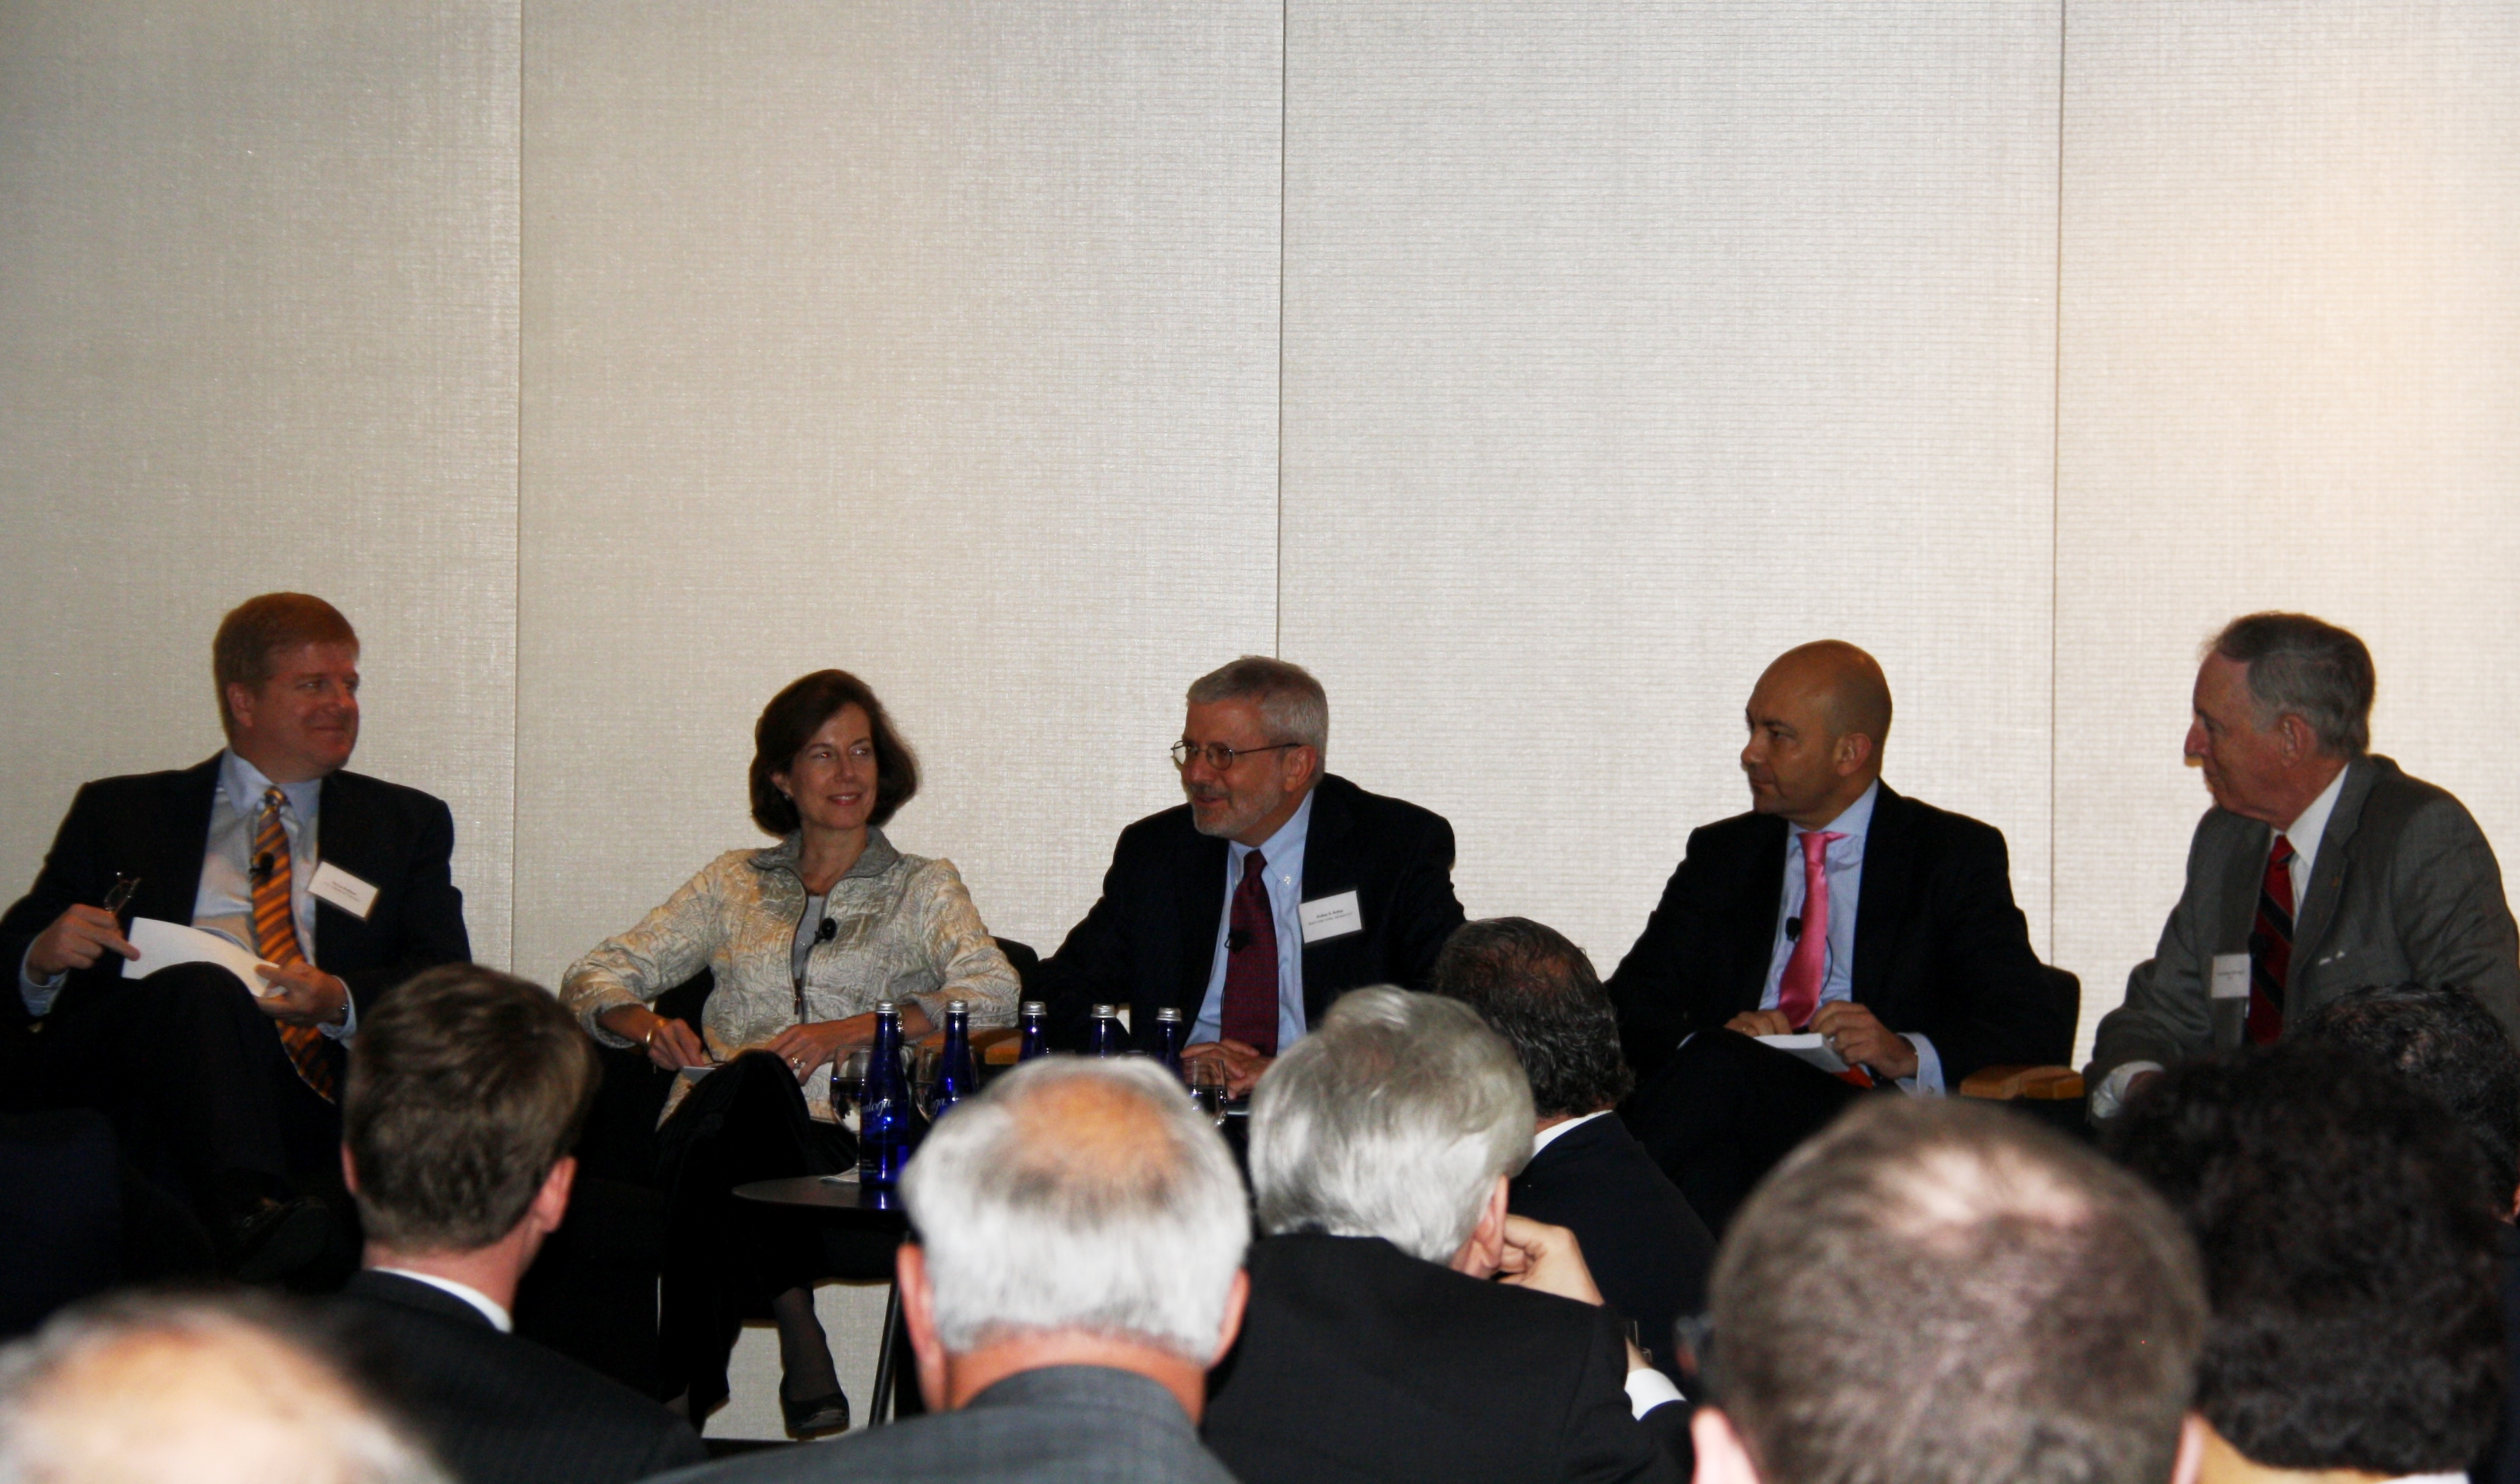 Ambassador Sapiro speaks on panel